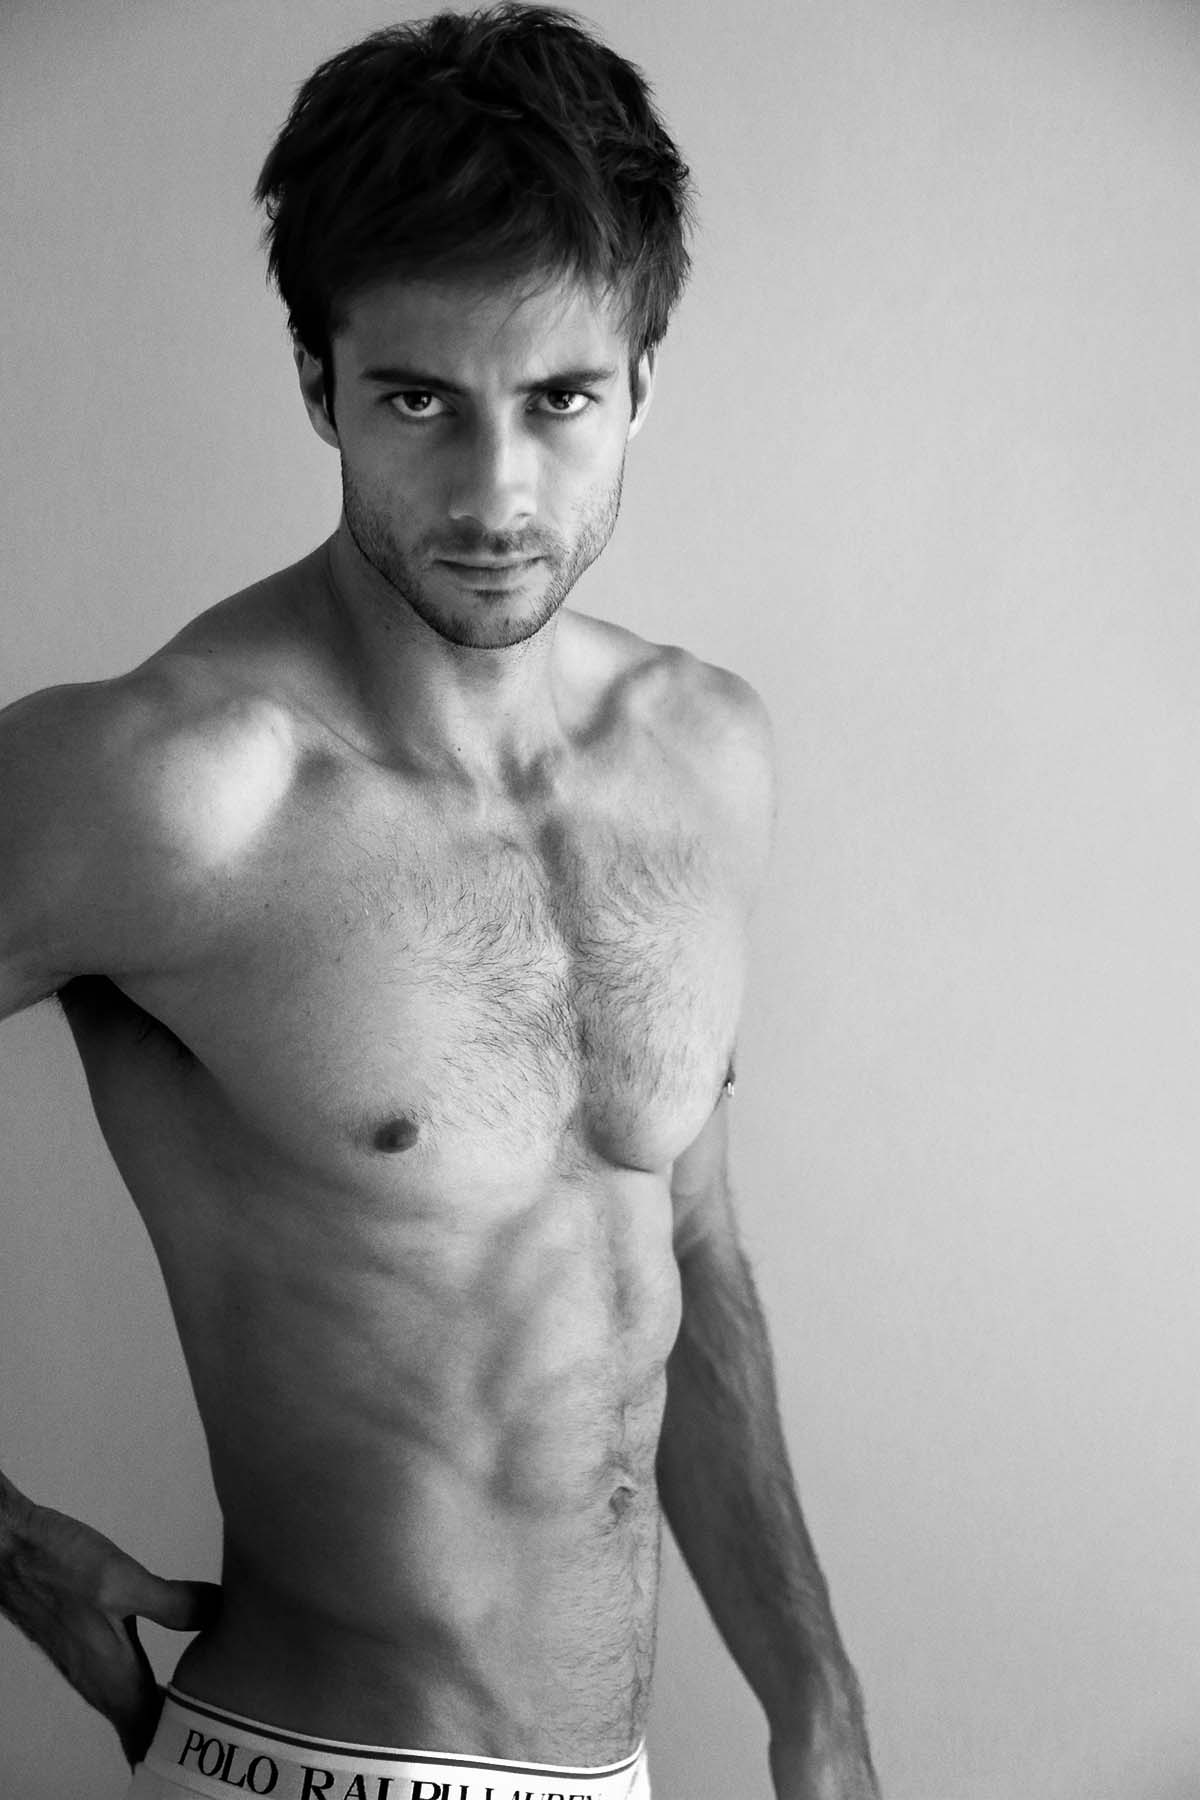 Gilberto Fritsch by Shinyoung Ma for Brazilian Male Model